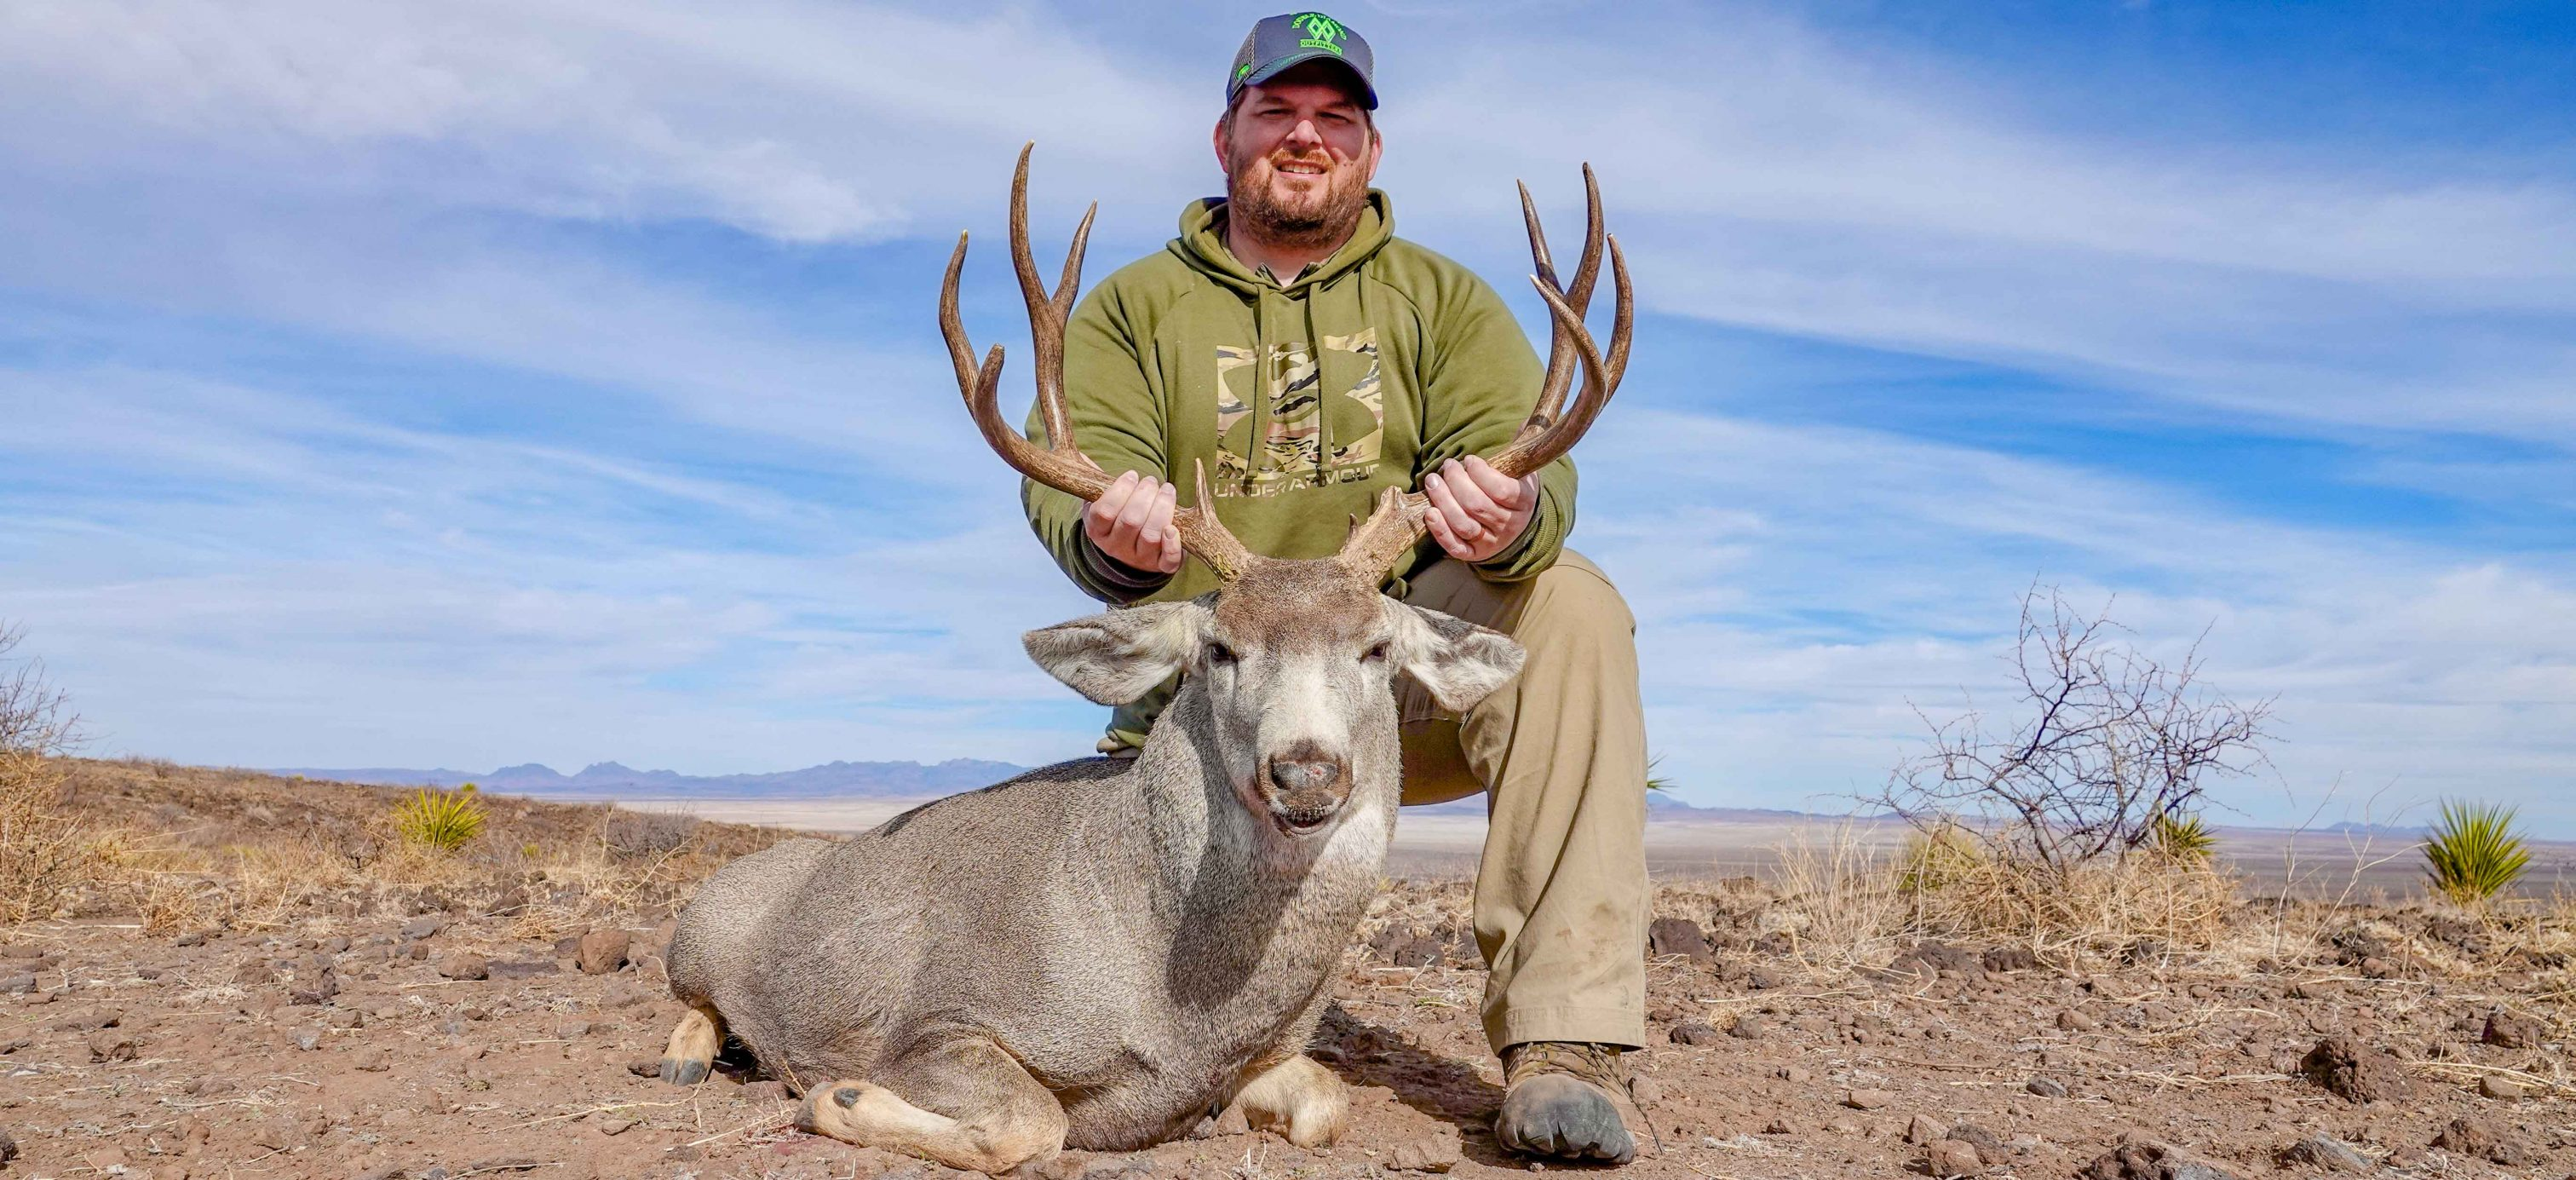 Hunter holding head of large Texas Mule Deer after Texas Mule Deer Hunt with Hunt Double Diamond Outfitters